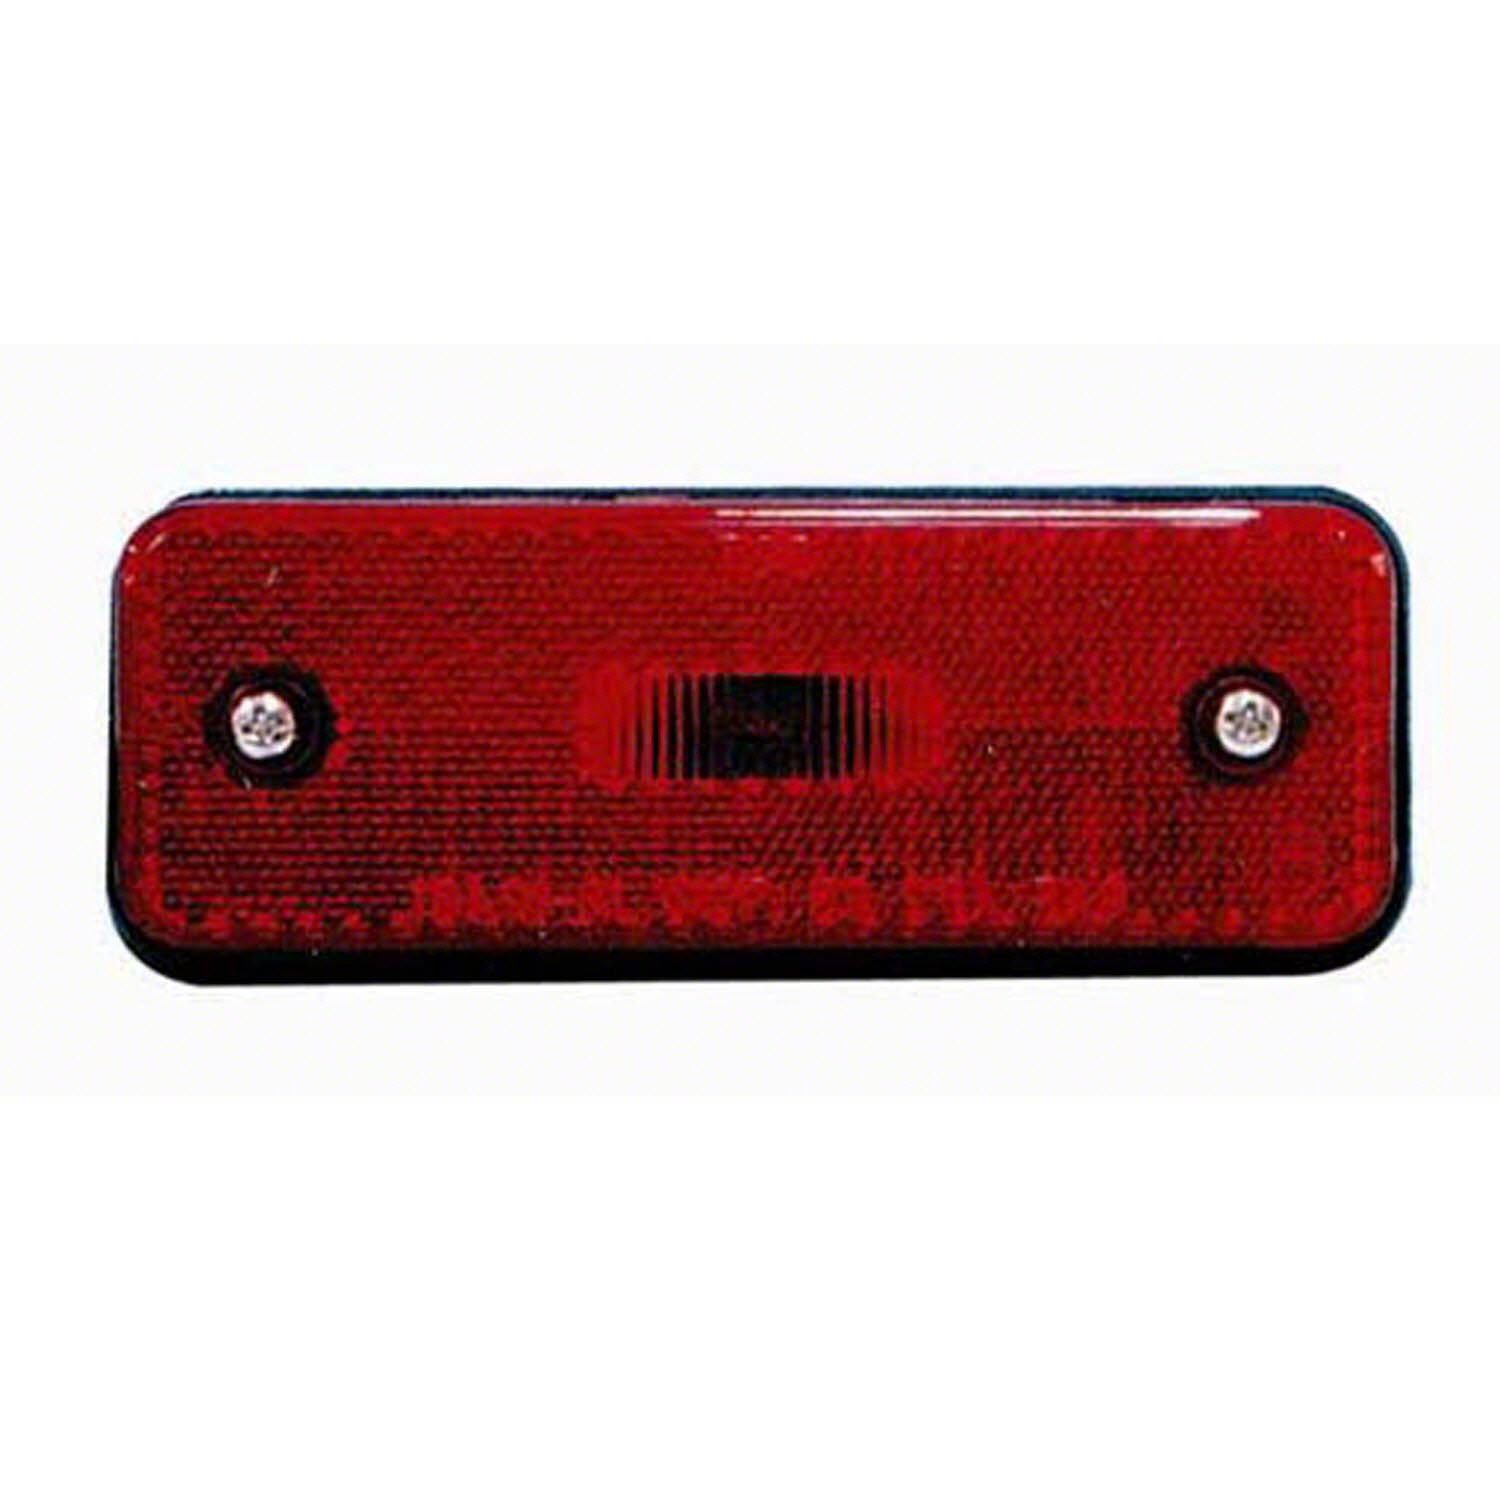 PartsChannel TO2860105 OE Replacement Side Marker Light Assembly